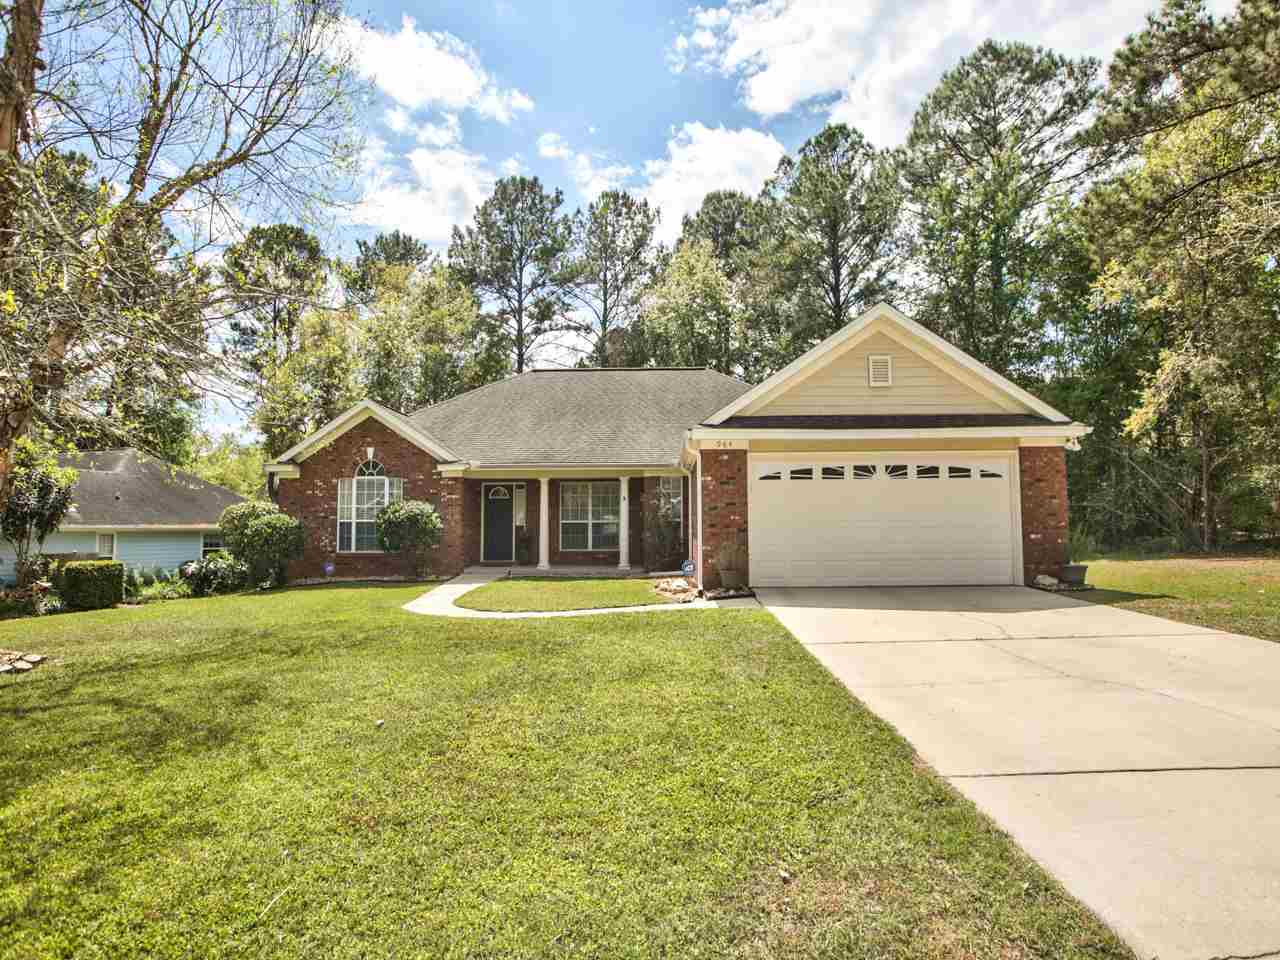 $279,000 - 4Br/2Ba -  for Sale in Piney Z, Tallahassee